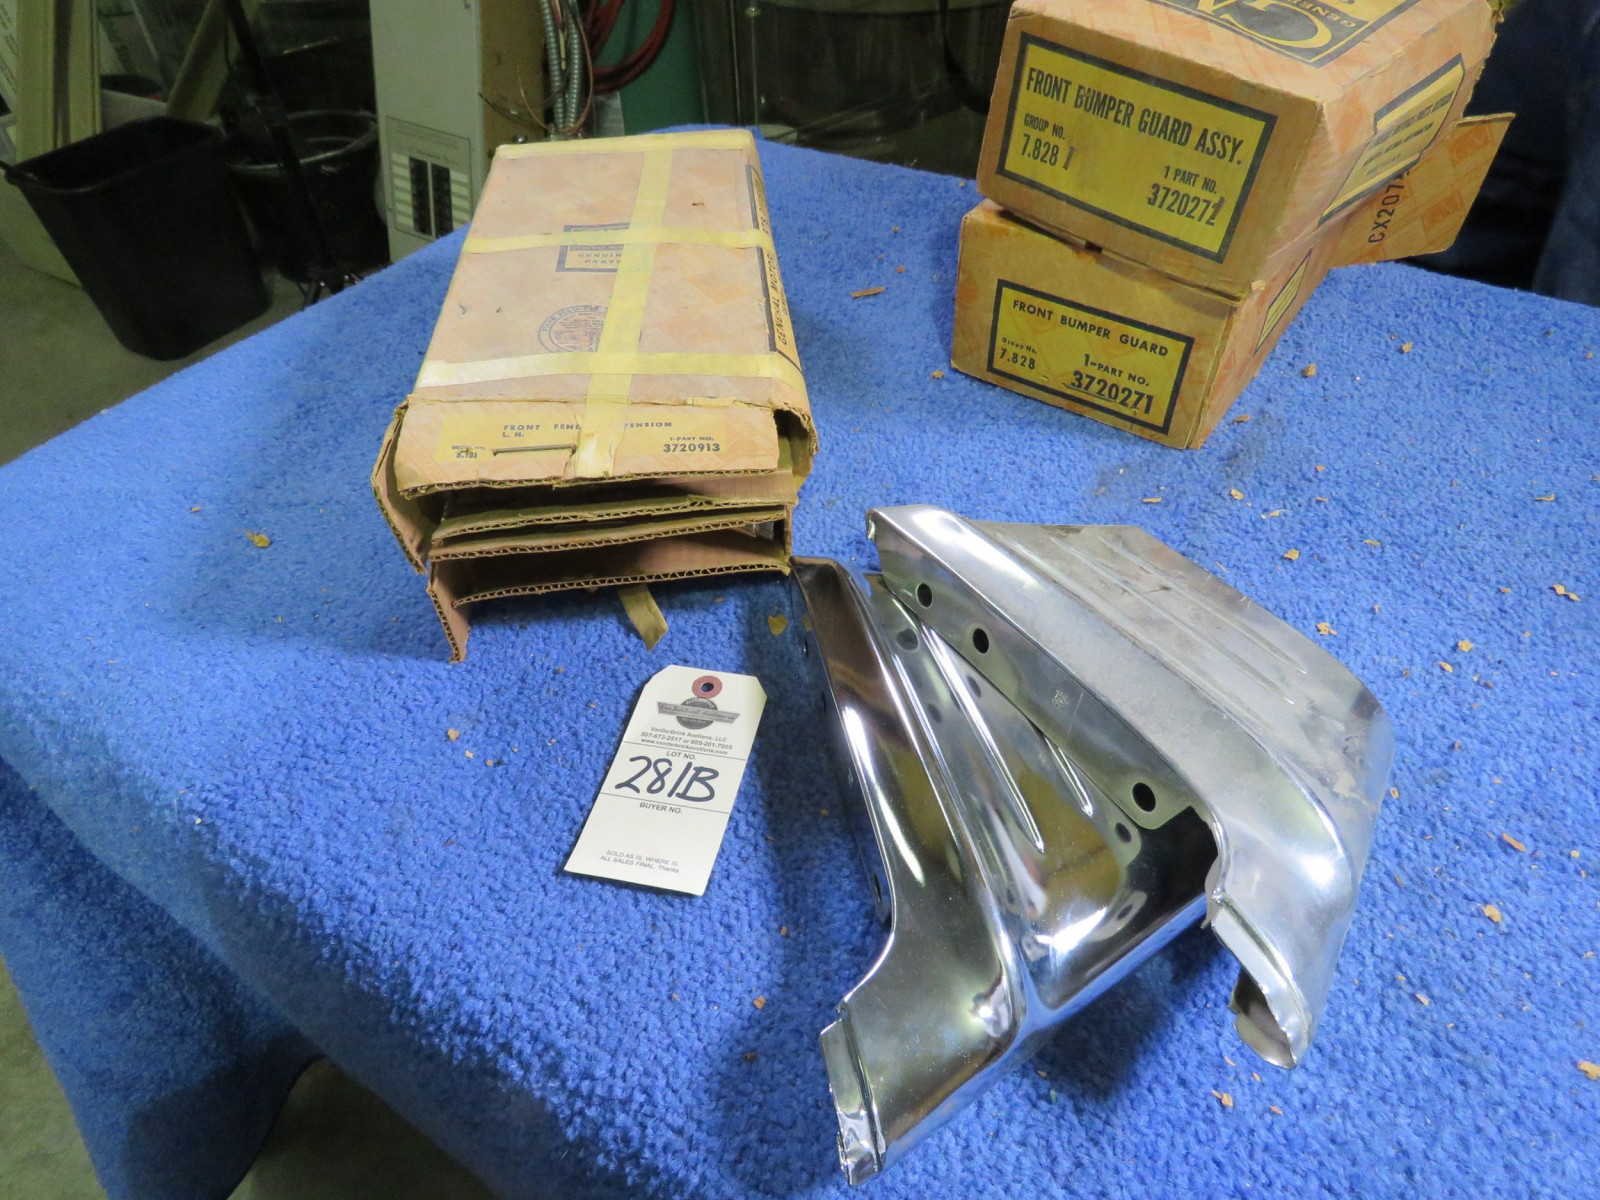 NIB 1956 Chevrolet Rocker Guards - Image 1